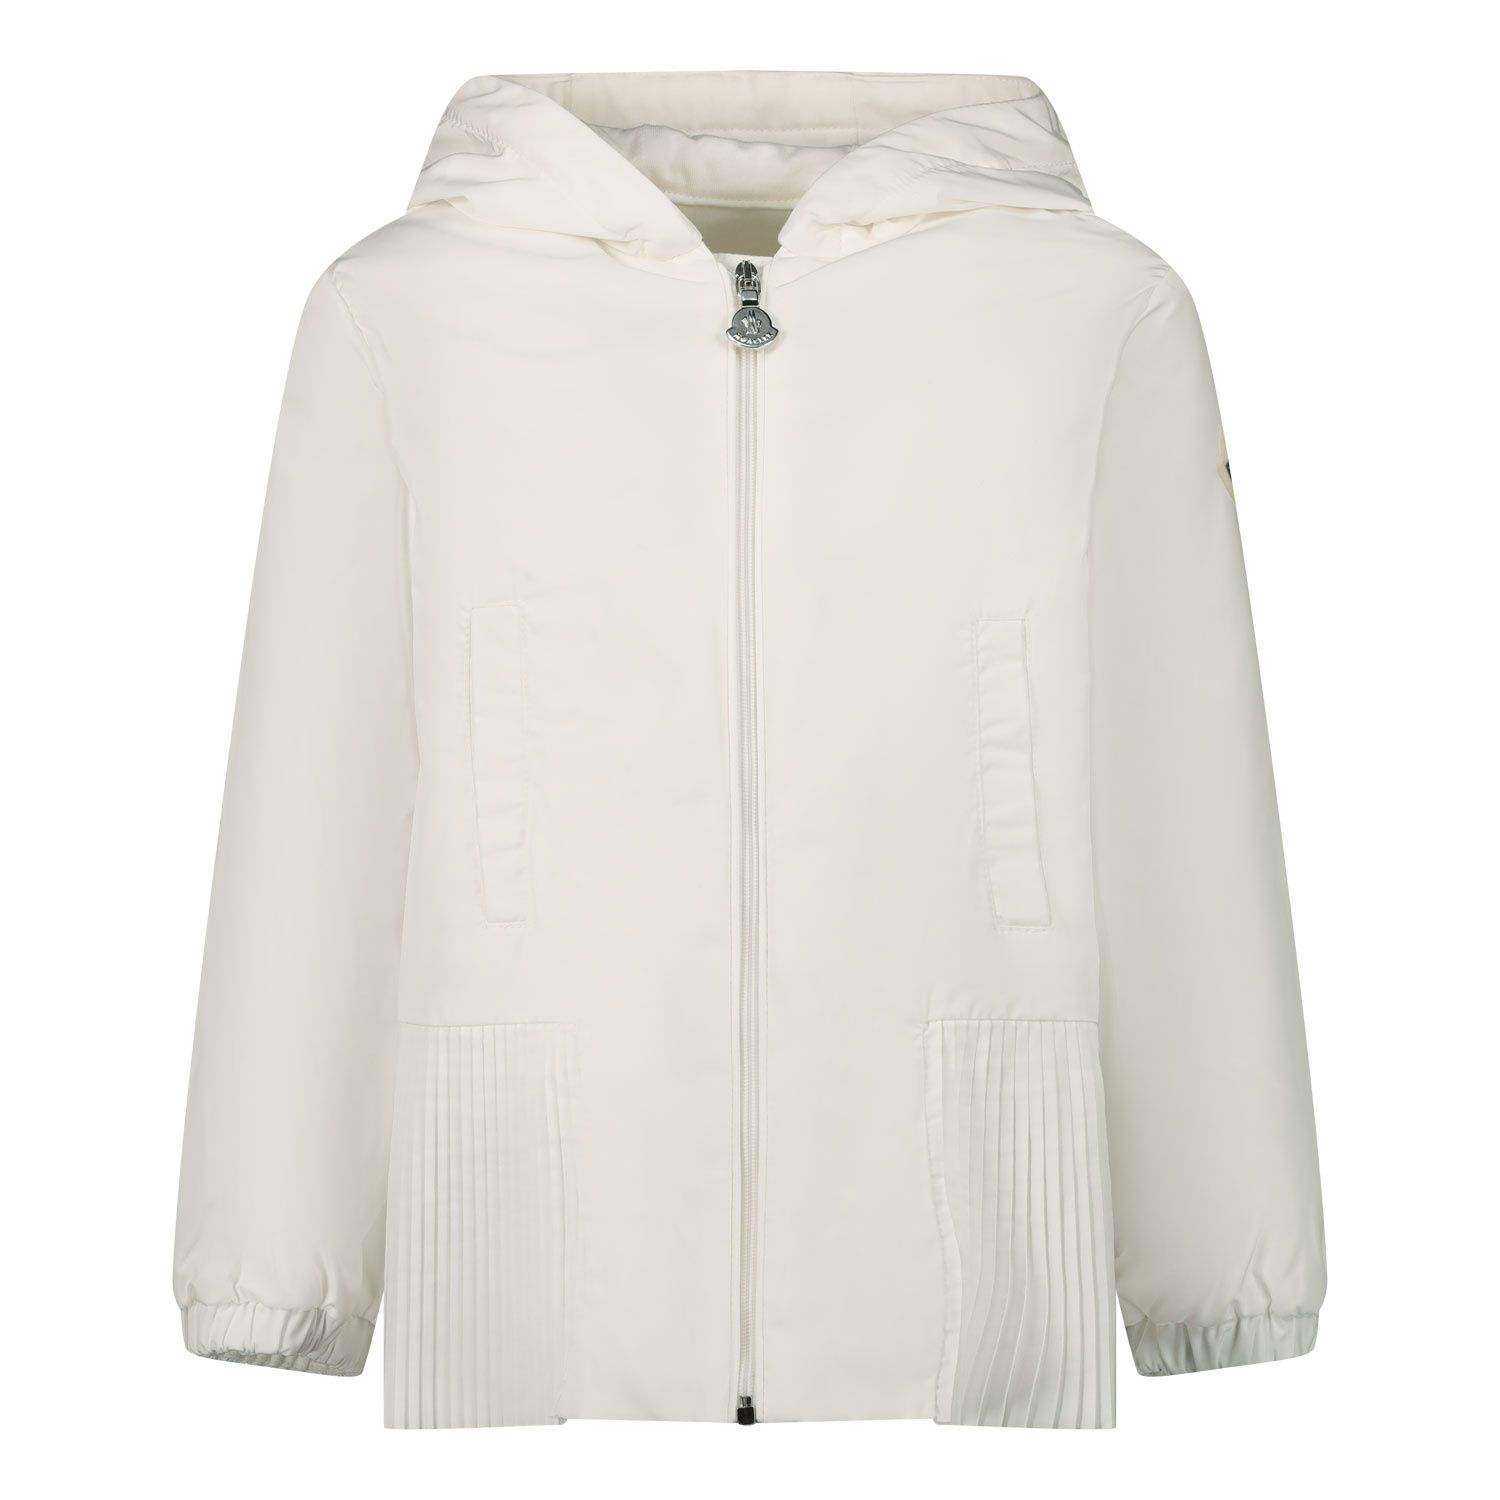 Picture of Moncler 1B70010 baby coat off white